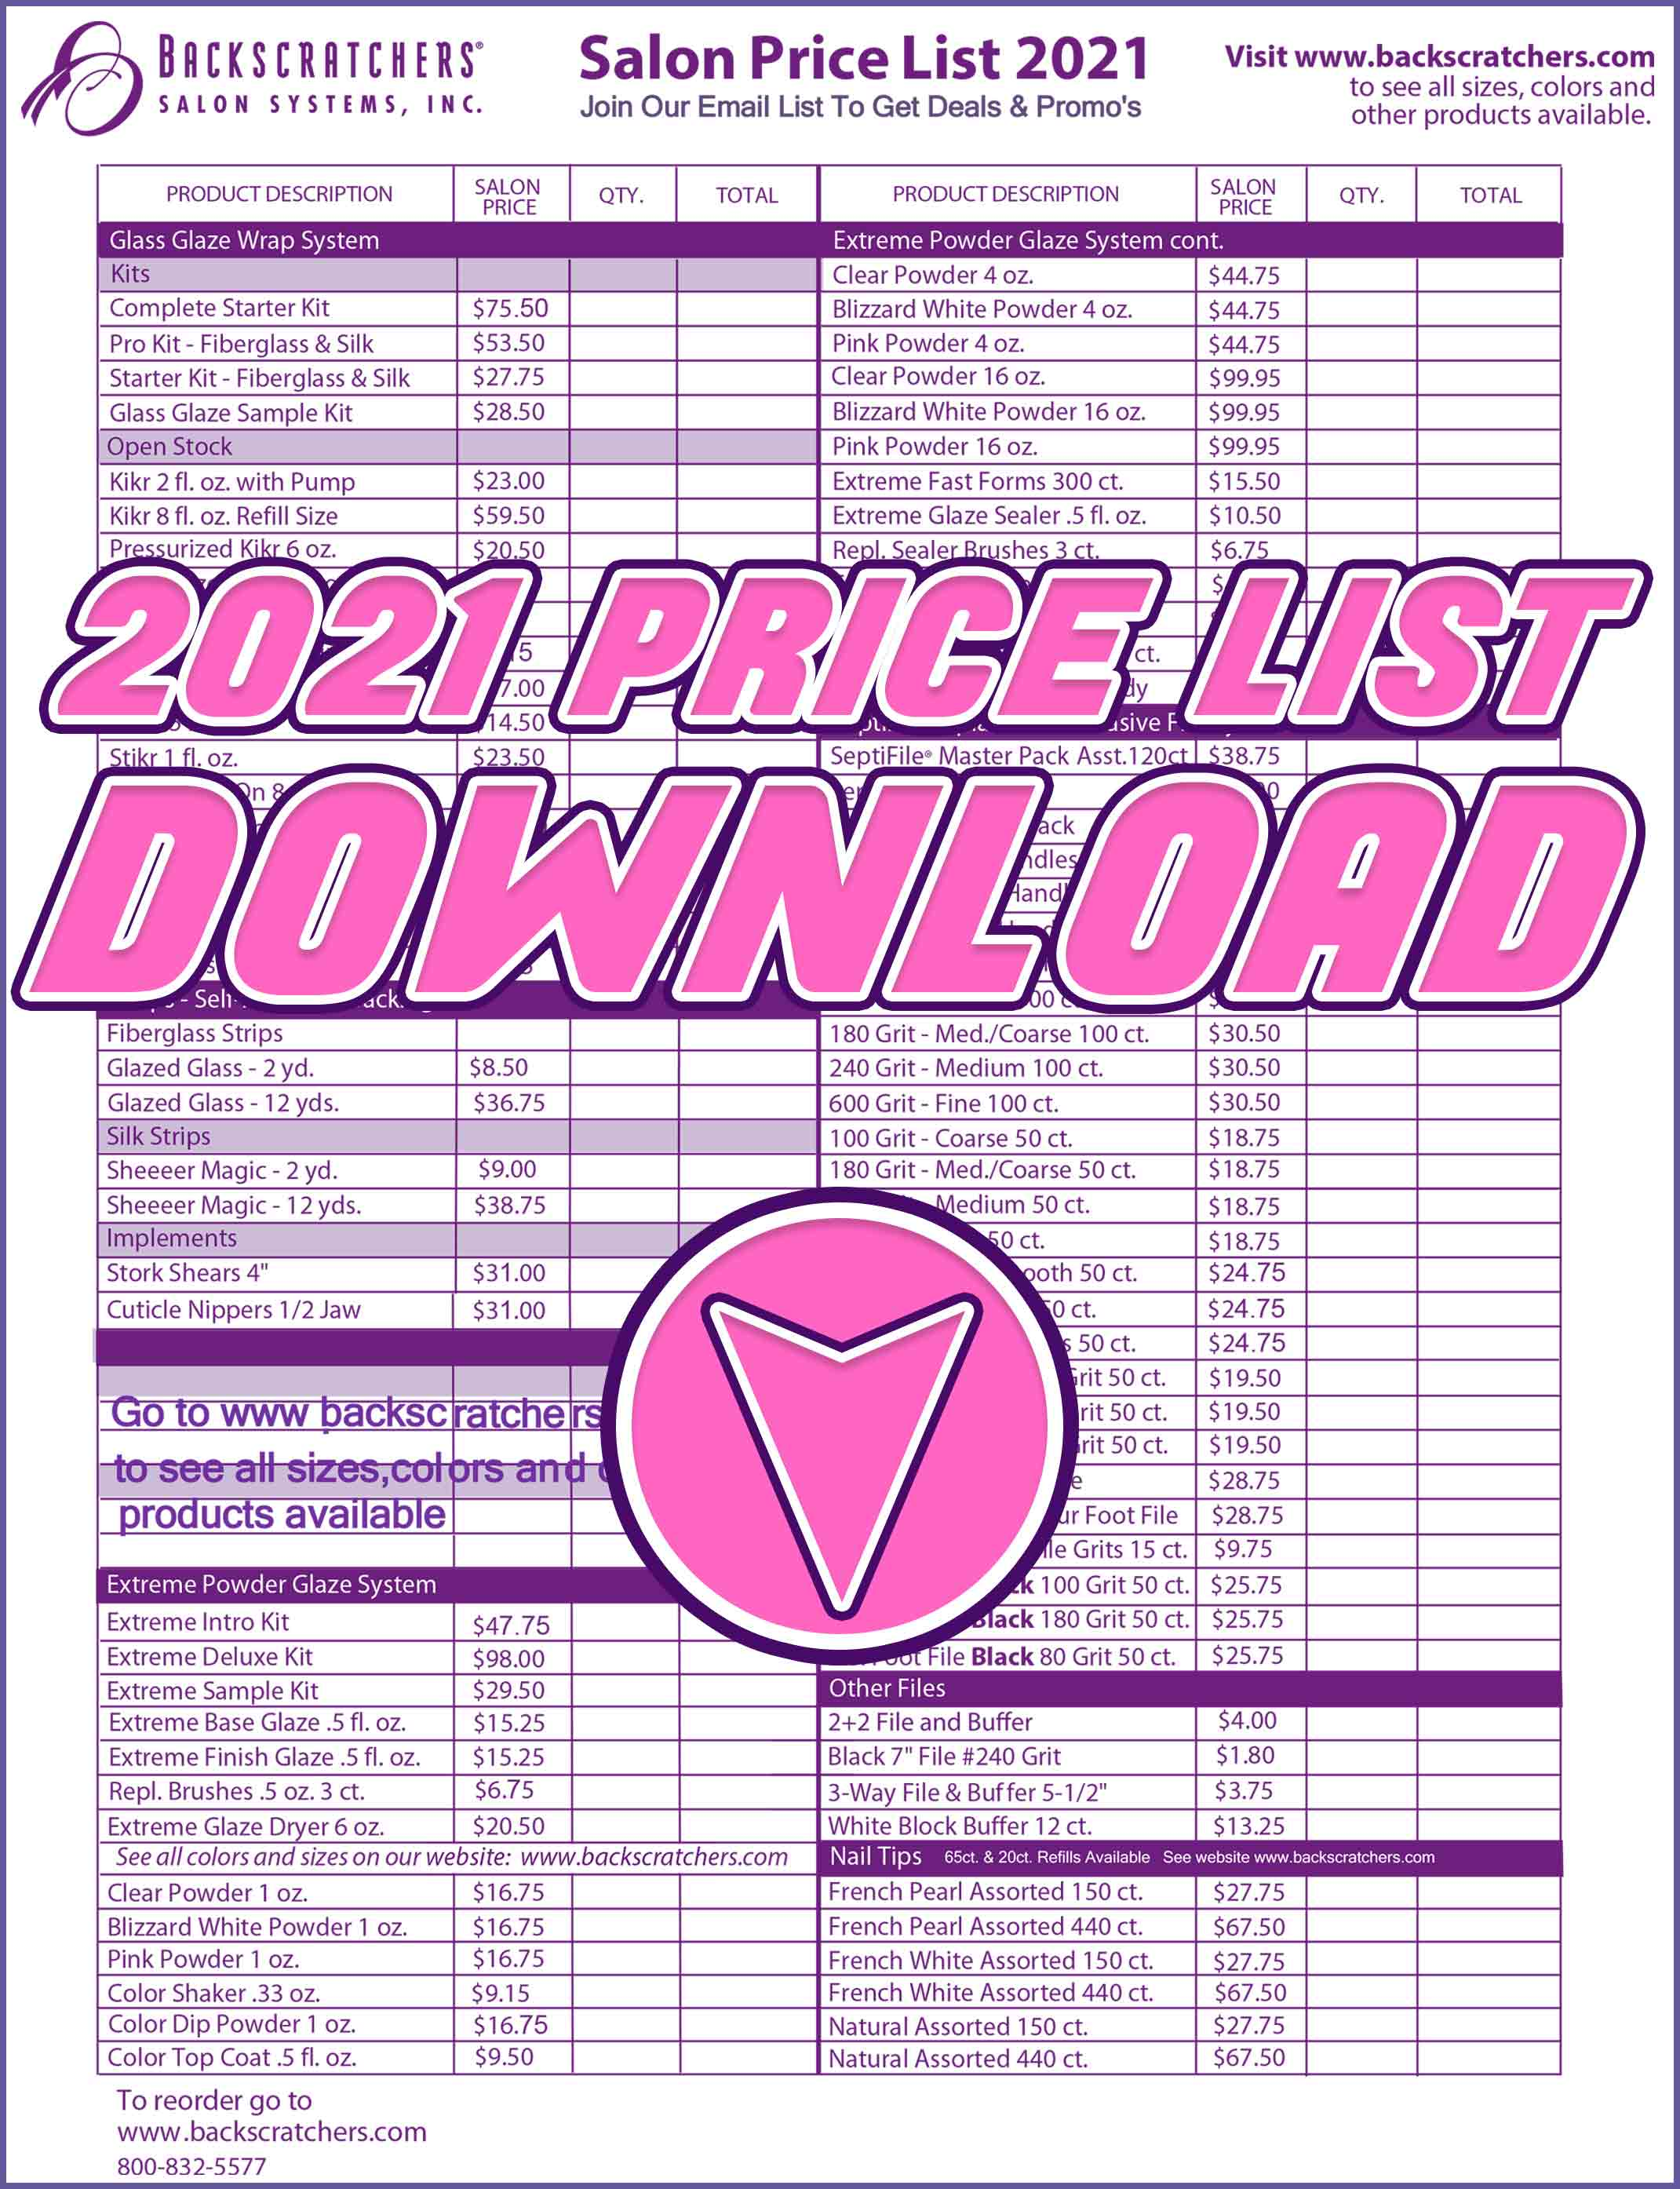 2021-salon-price-list.jpg